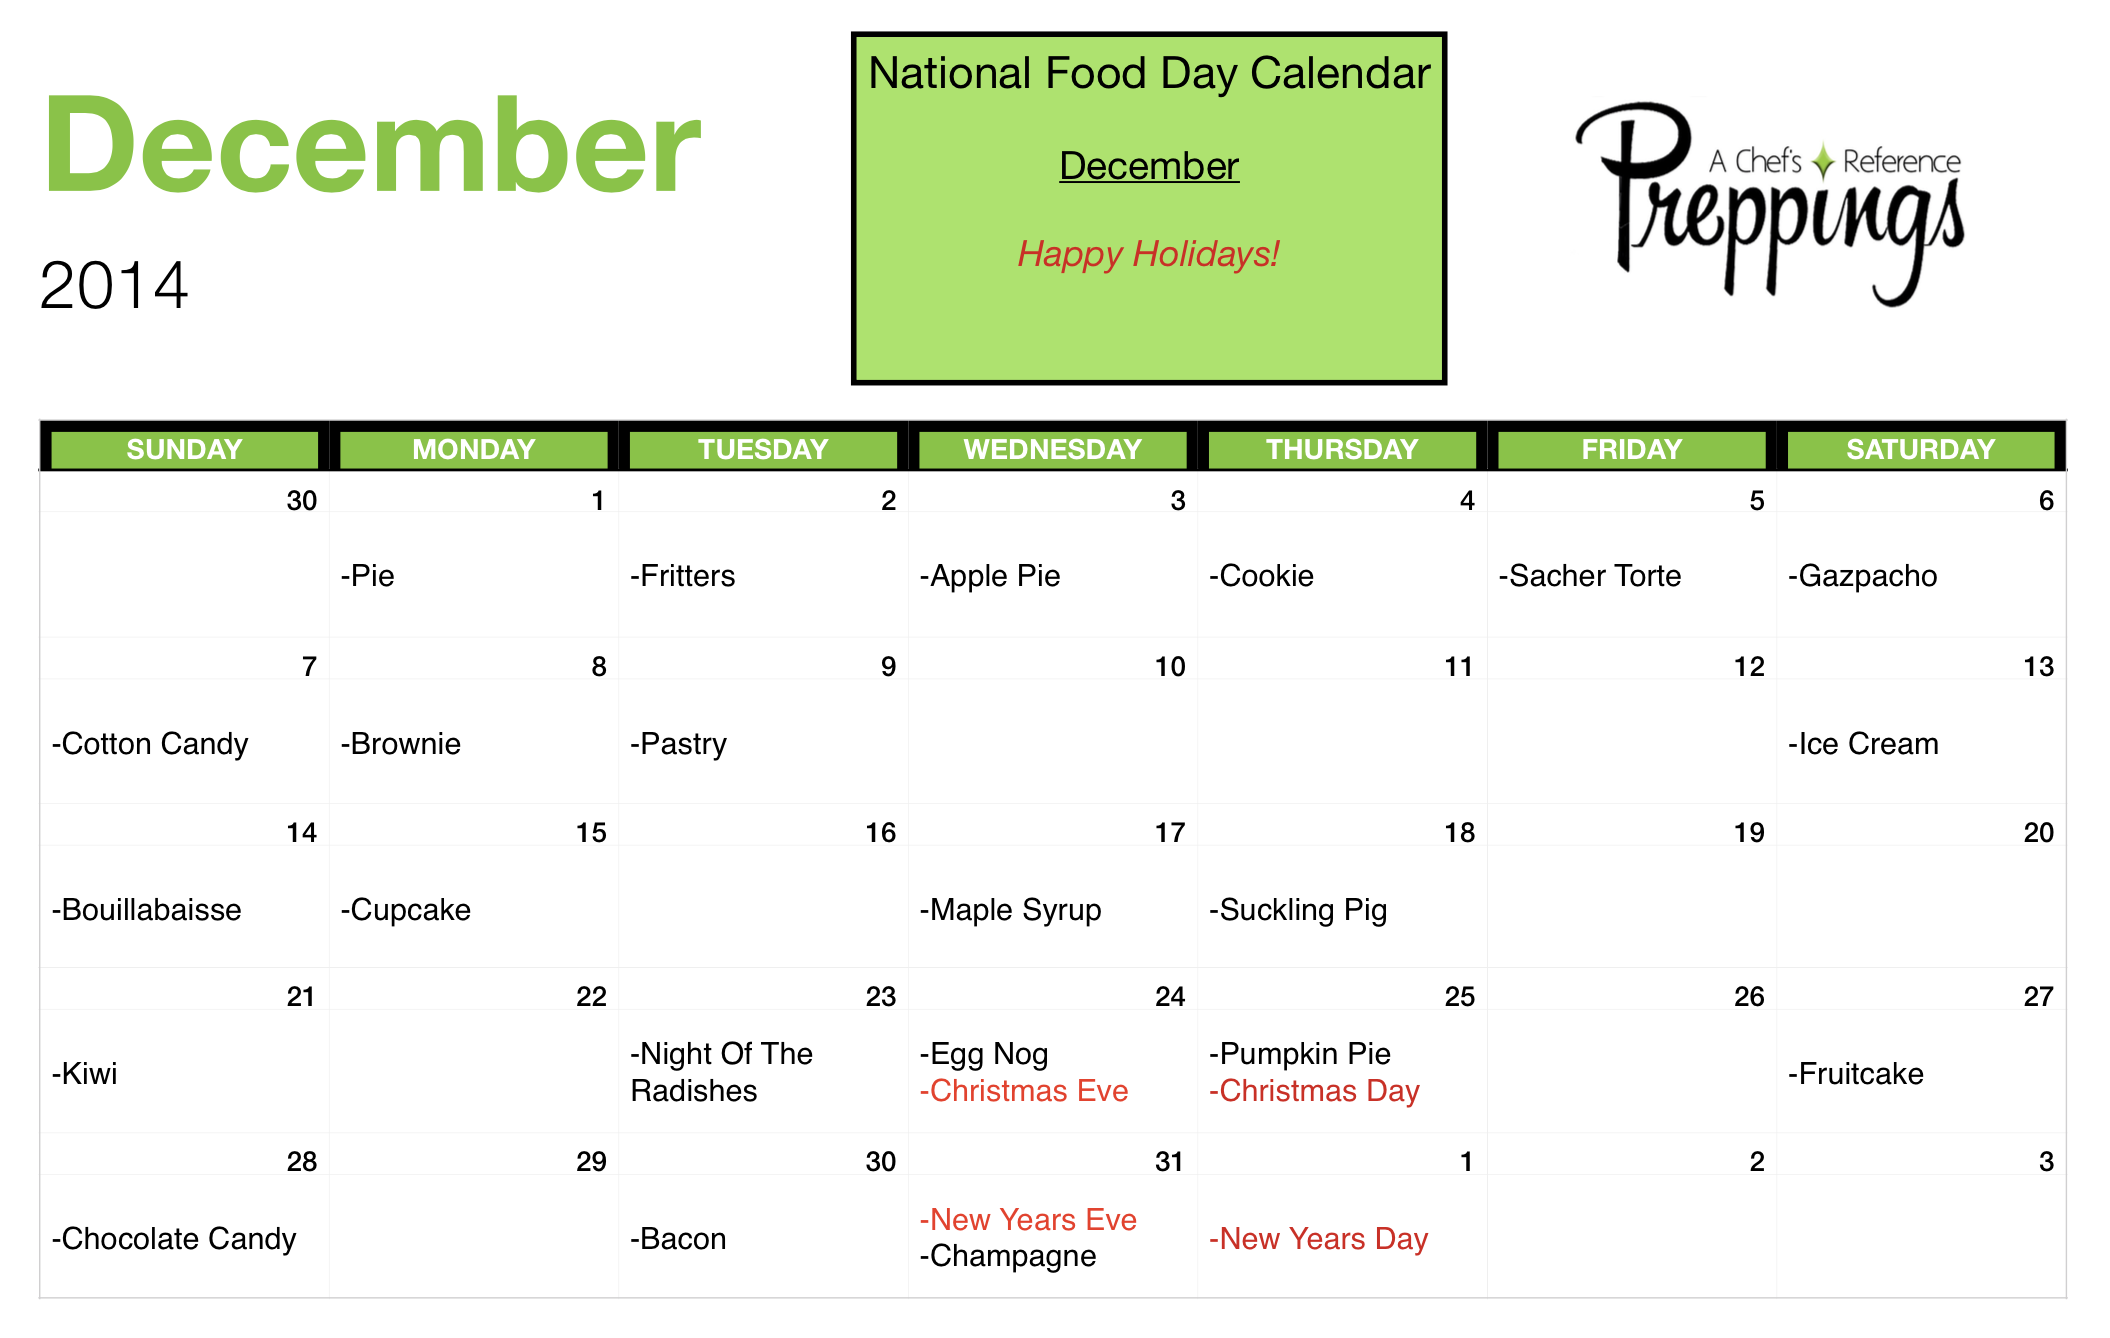 National Food Days- December 2014